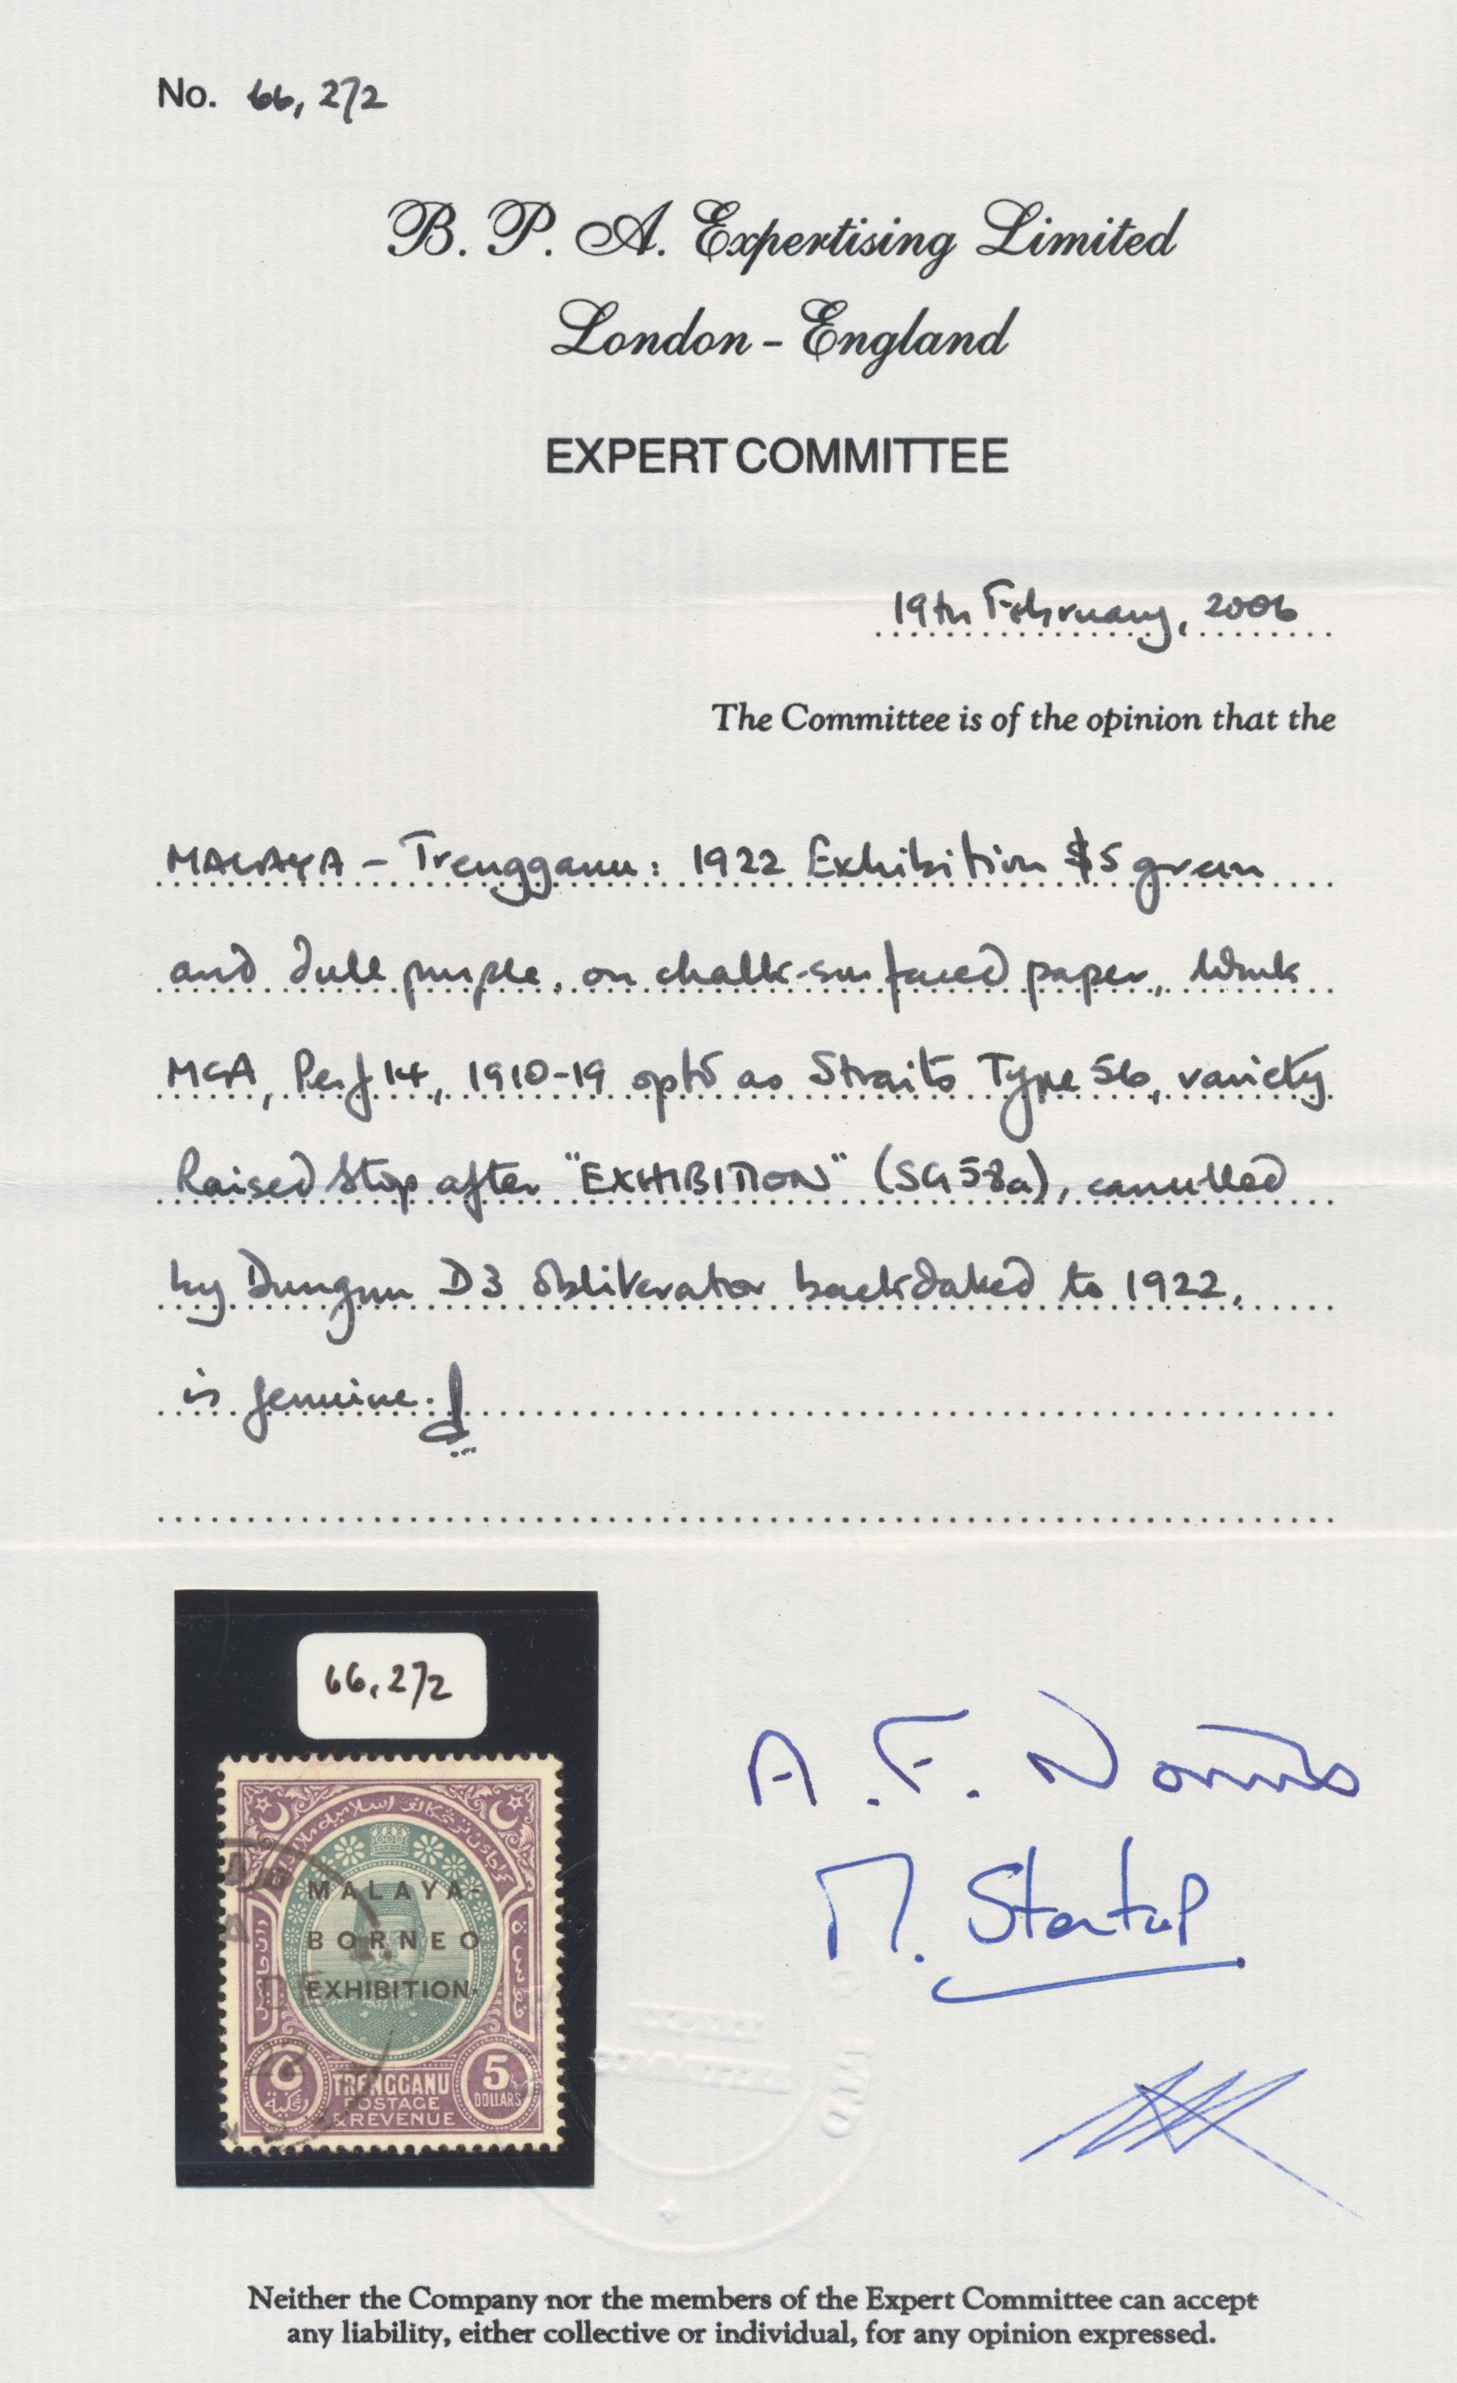 Lot 10134 - Malaiische Staaten - Trengganu  -  Auktionshaus Christoph Gärtner GmbH & Co. KG Philately: ASIA single lots including Special Catalog Malaya Auction #39 Day 3